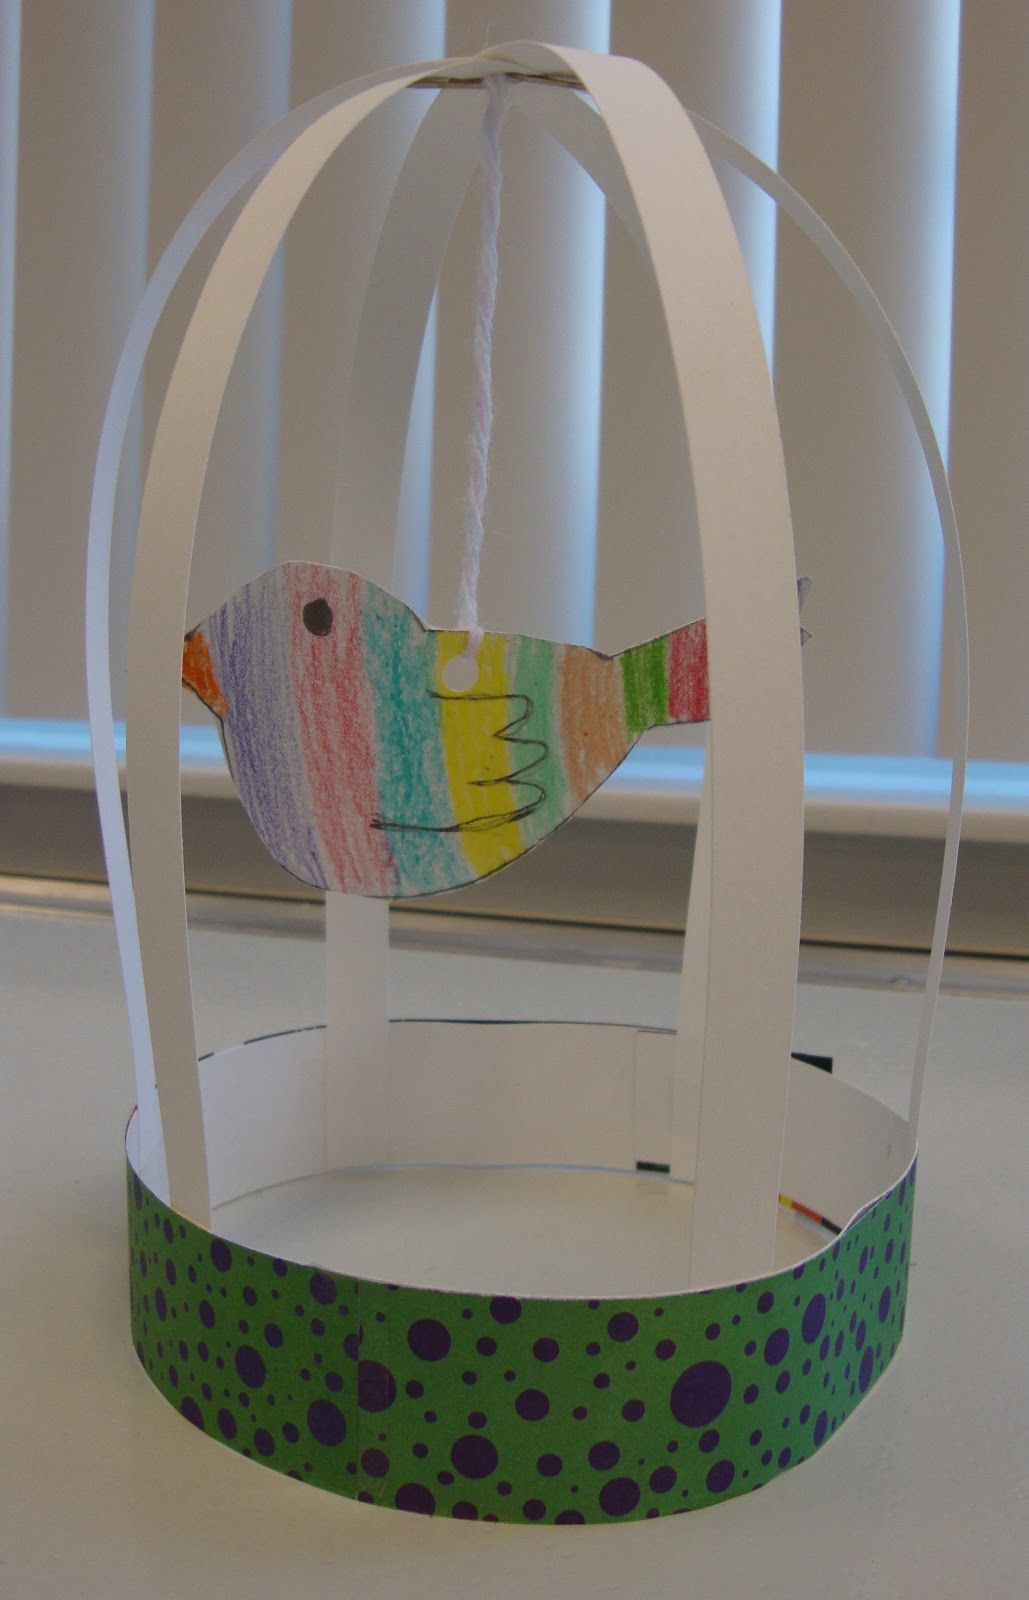 Art Paper Scissors Glue Bird Cage Sculptures